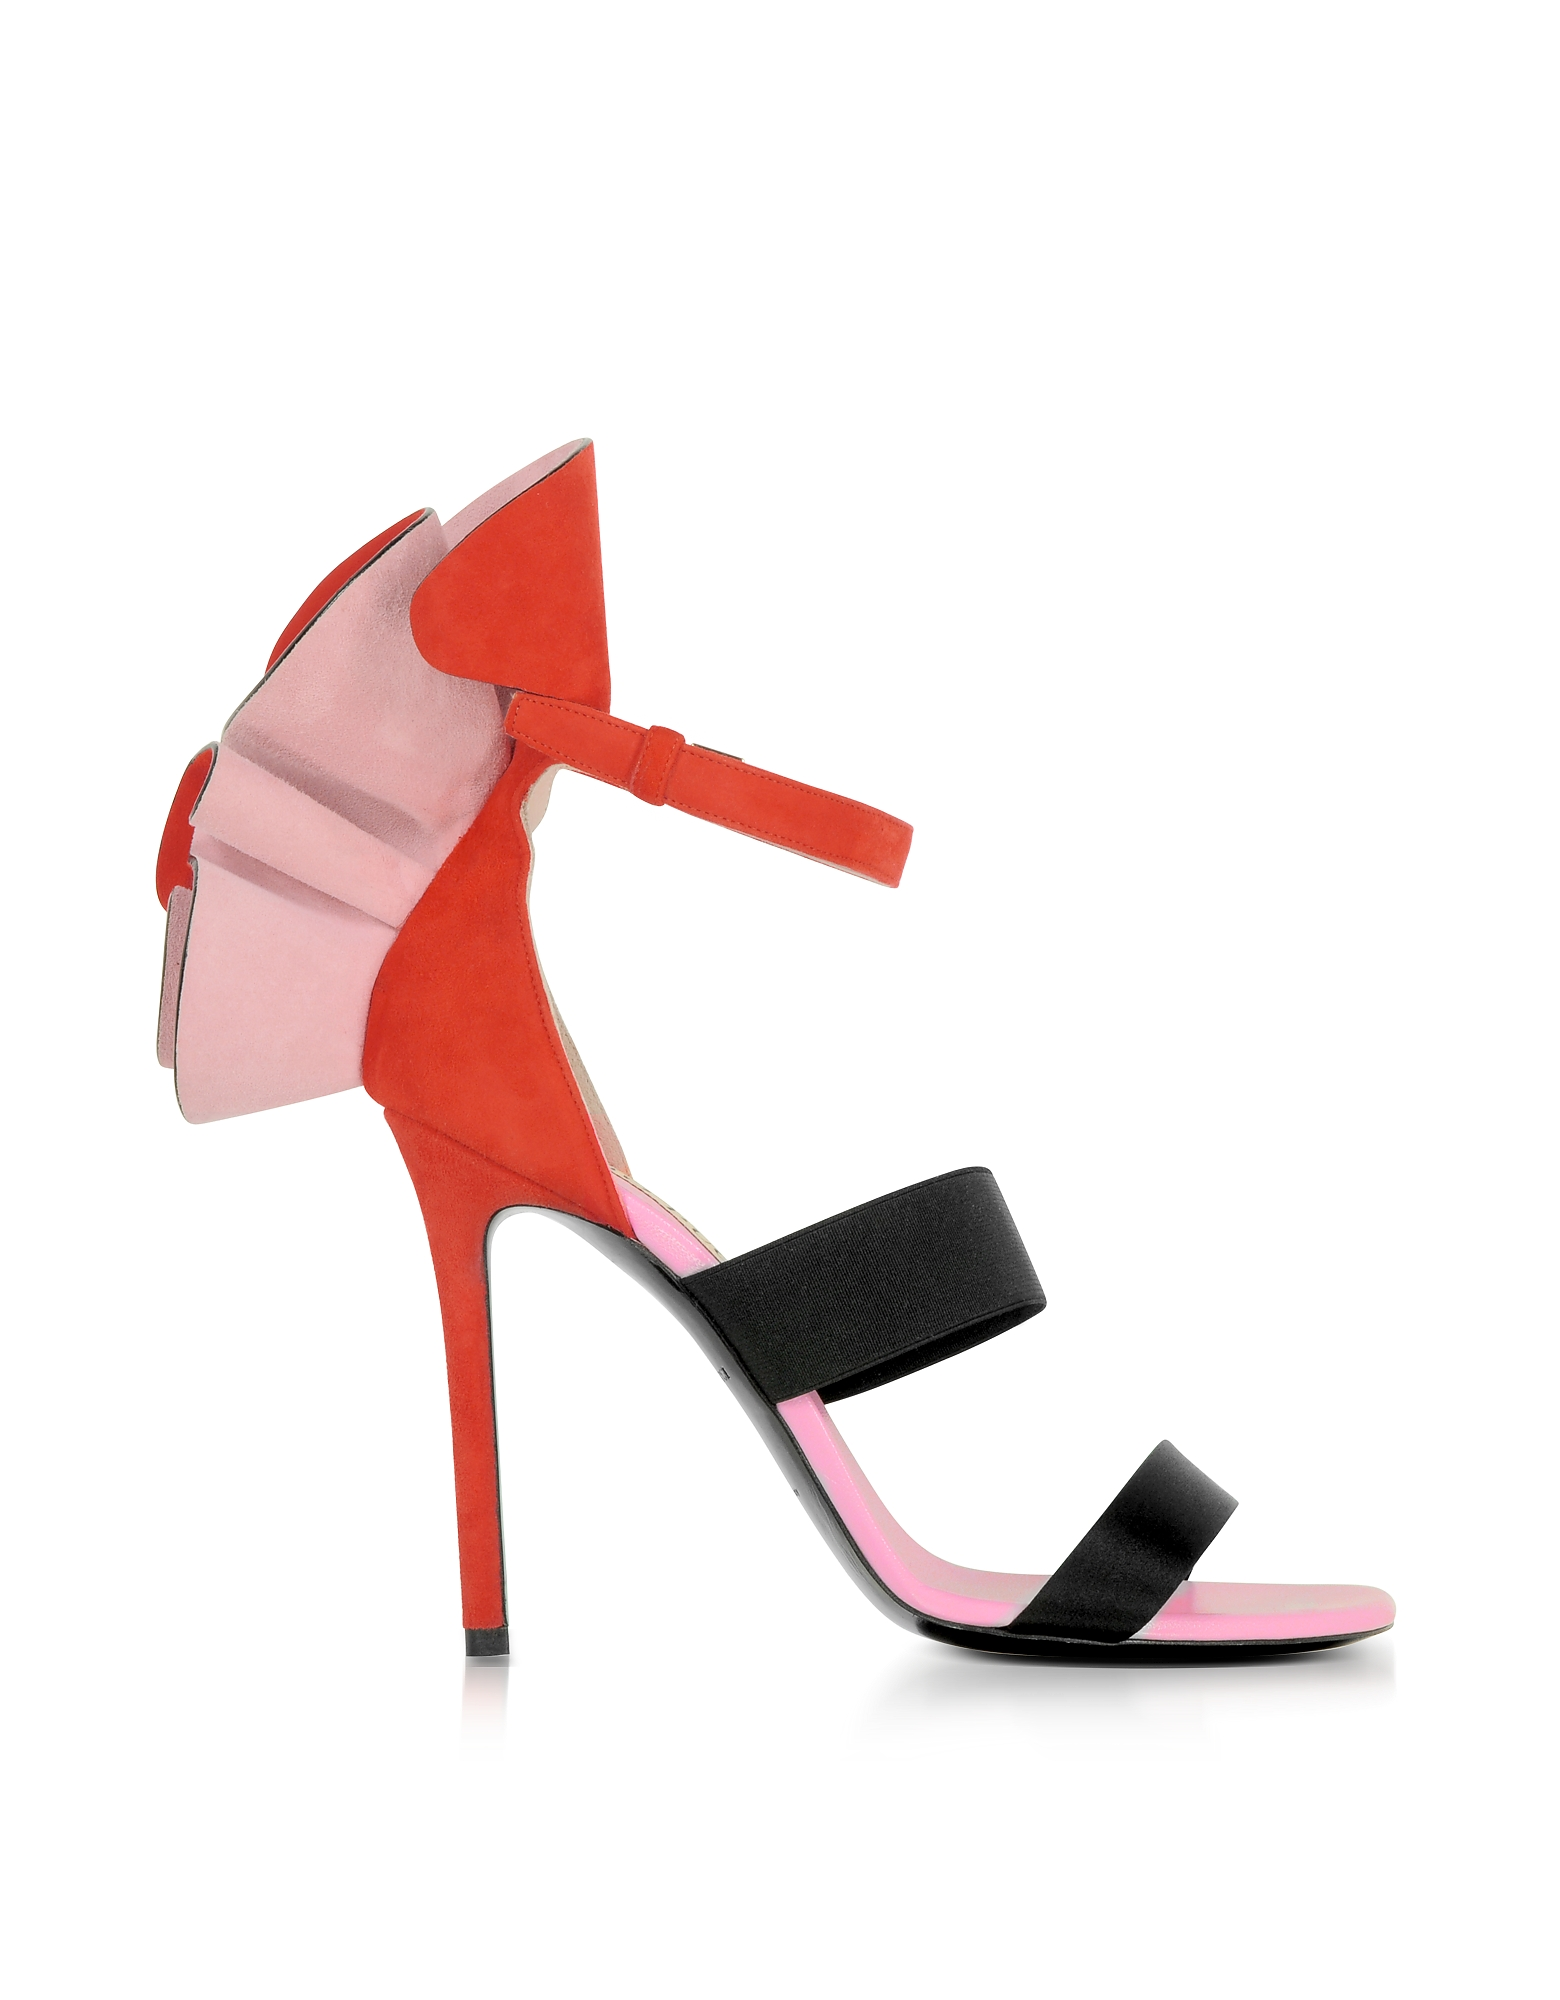 Emilio Pucci Shoes, Color Block Suede and Silk High Heel Sandals w/Ruffles